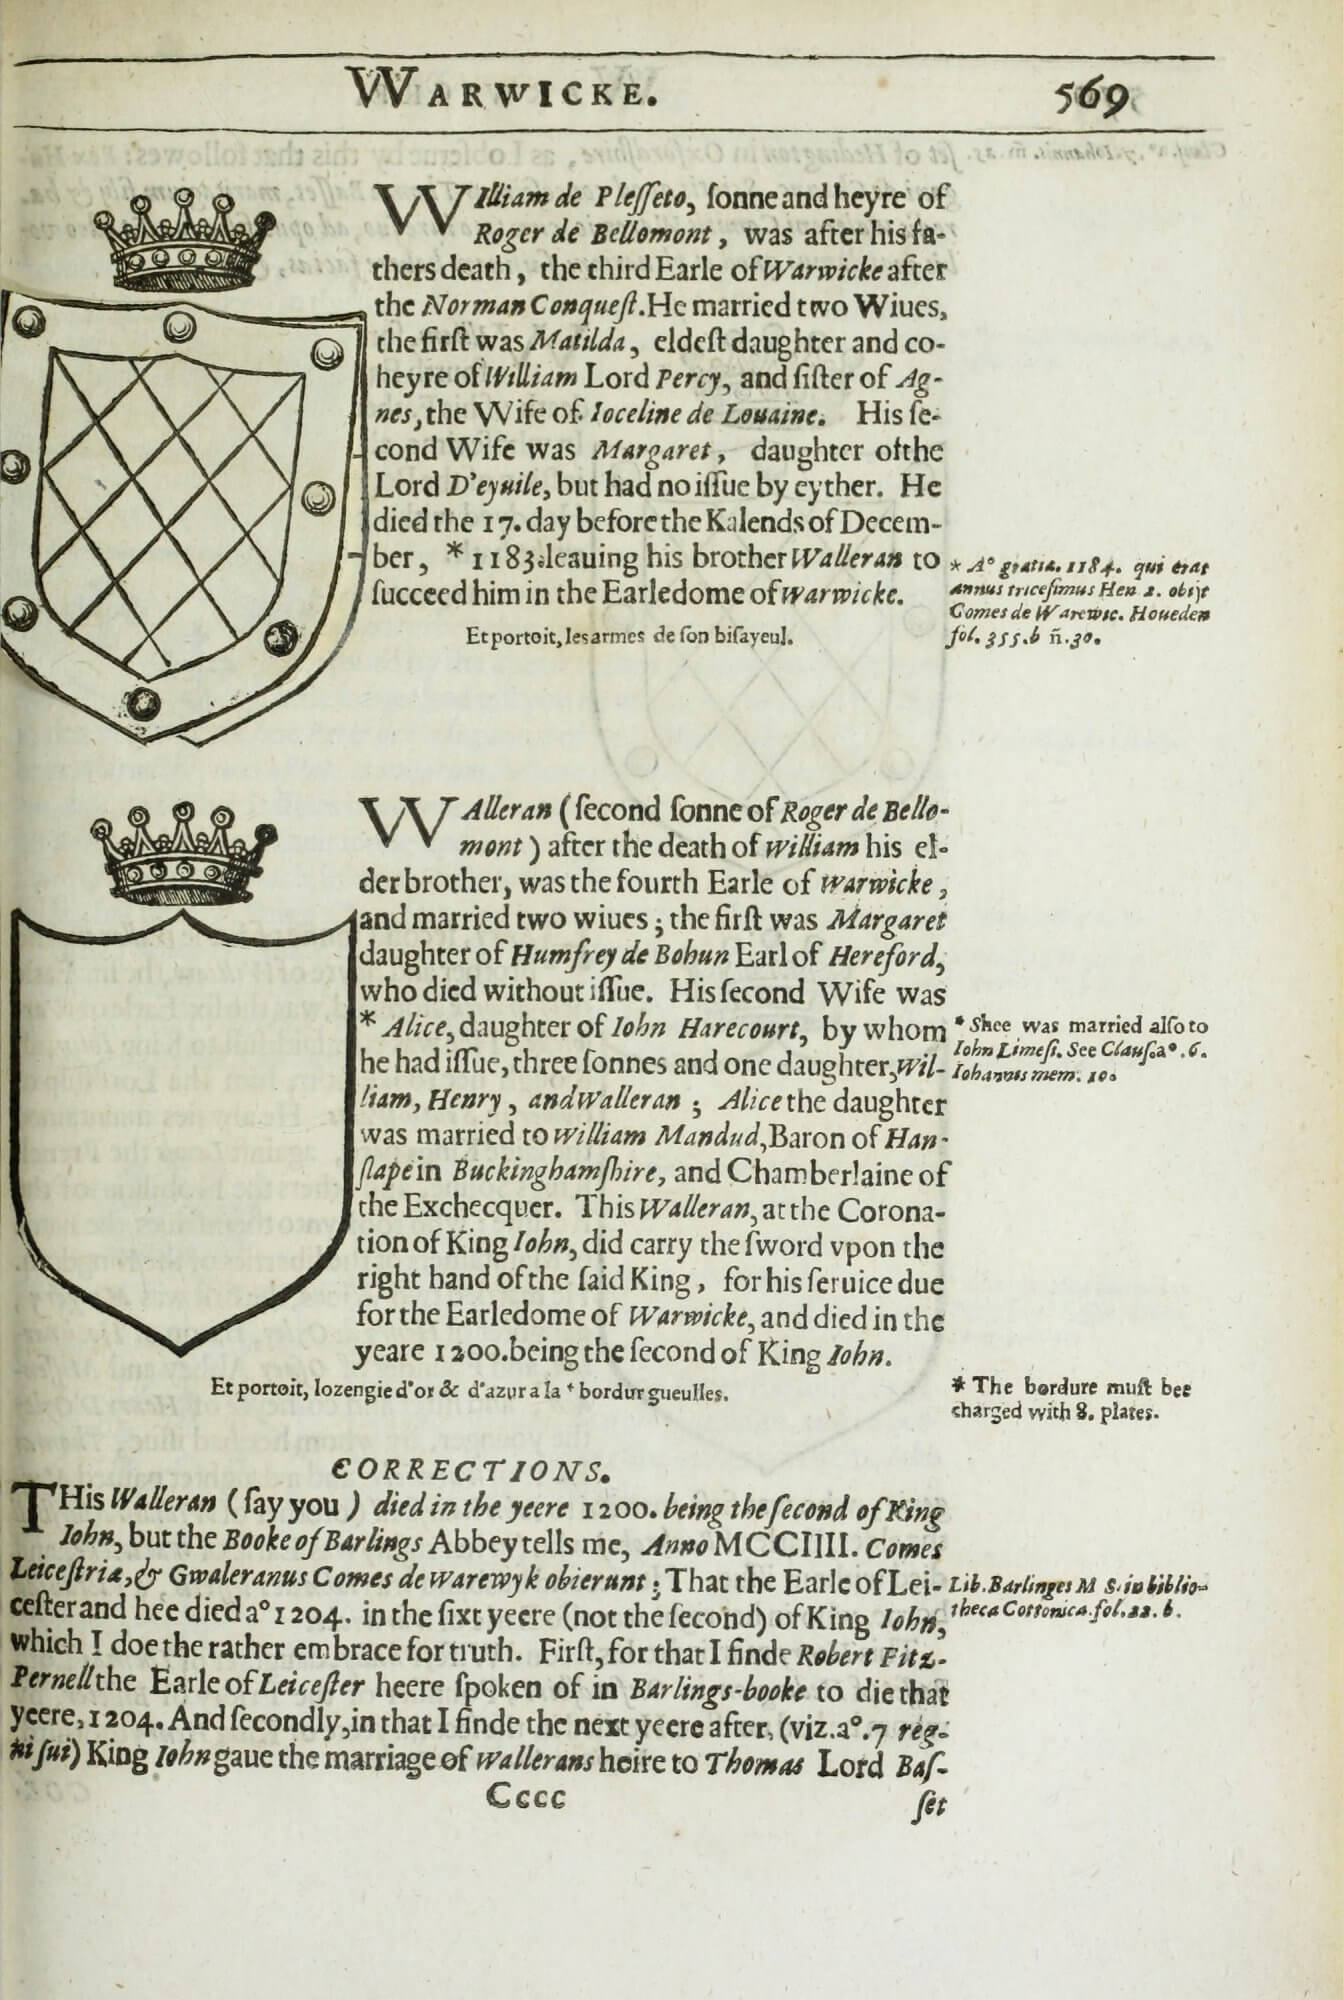 A cancel slip has been pasted over the top coat of arms to correct it; in this copy, the slip is slightly askew, making it easy to spot.